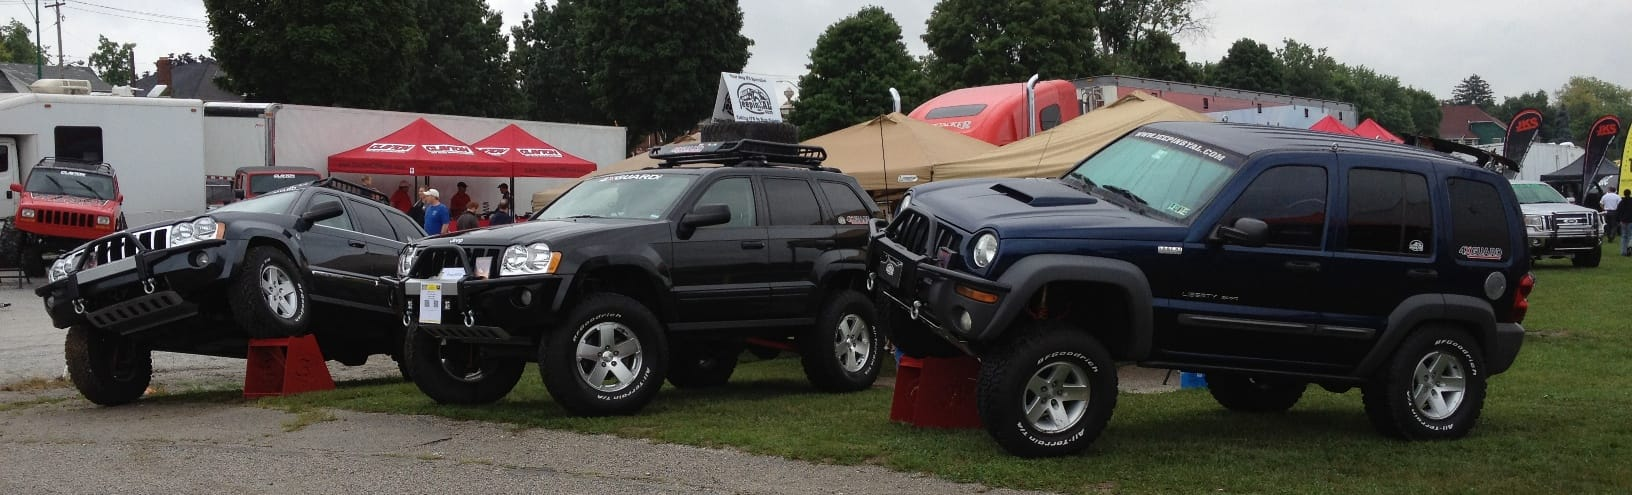 Jeeps at PA Jeep Show